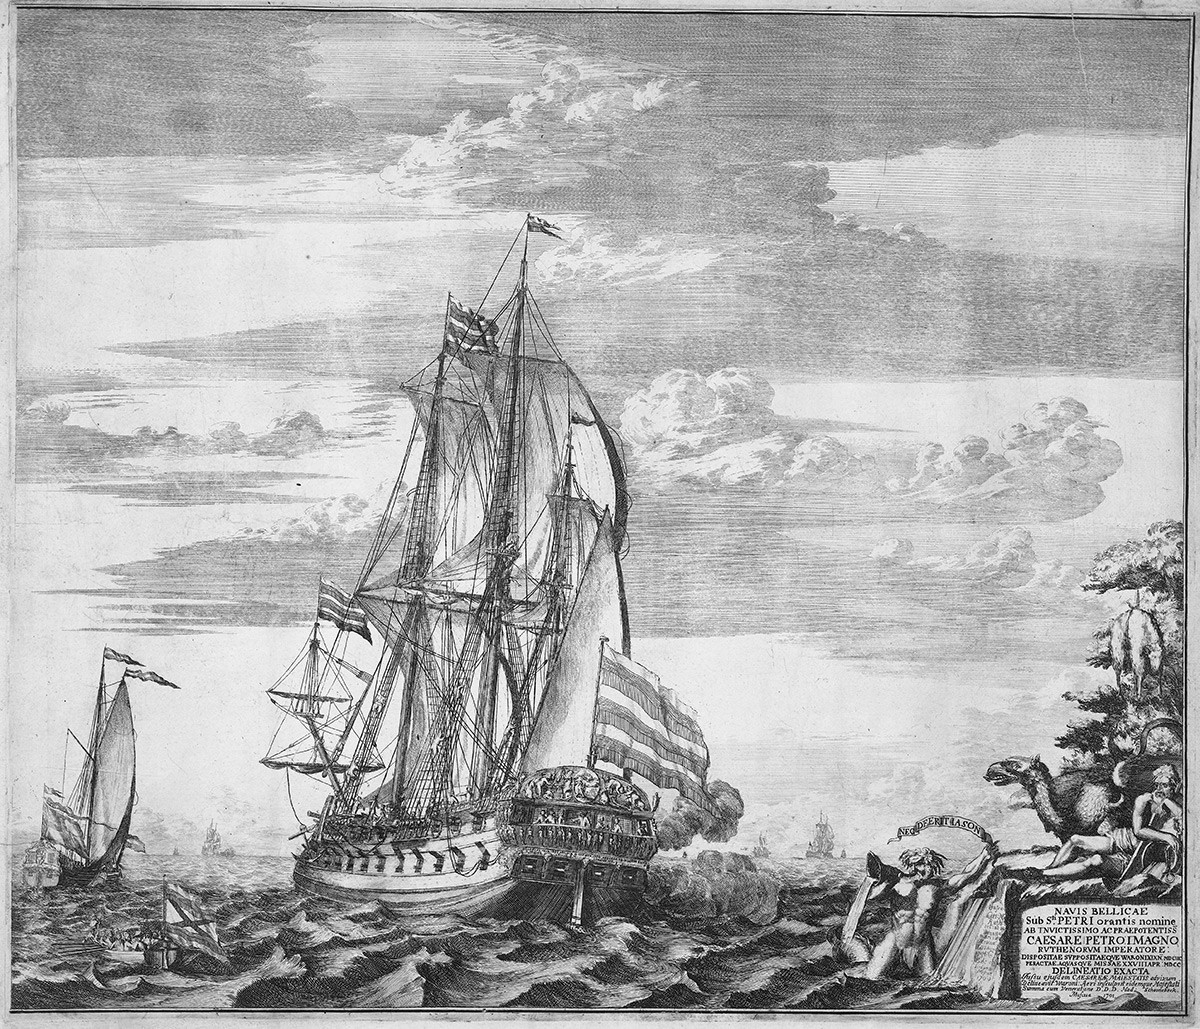 Flagship 'Goto Predestinatsia' (The Providence of God) built by Peter the Great at Voronezh, 1700, 1701. Found in the collection of Rijksmuseum, Amsterdam. Artist : Schoonebeek (Schoonebeck), Adriaan (1661-1705).